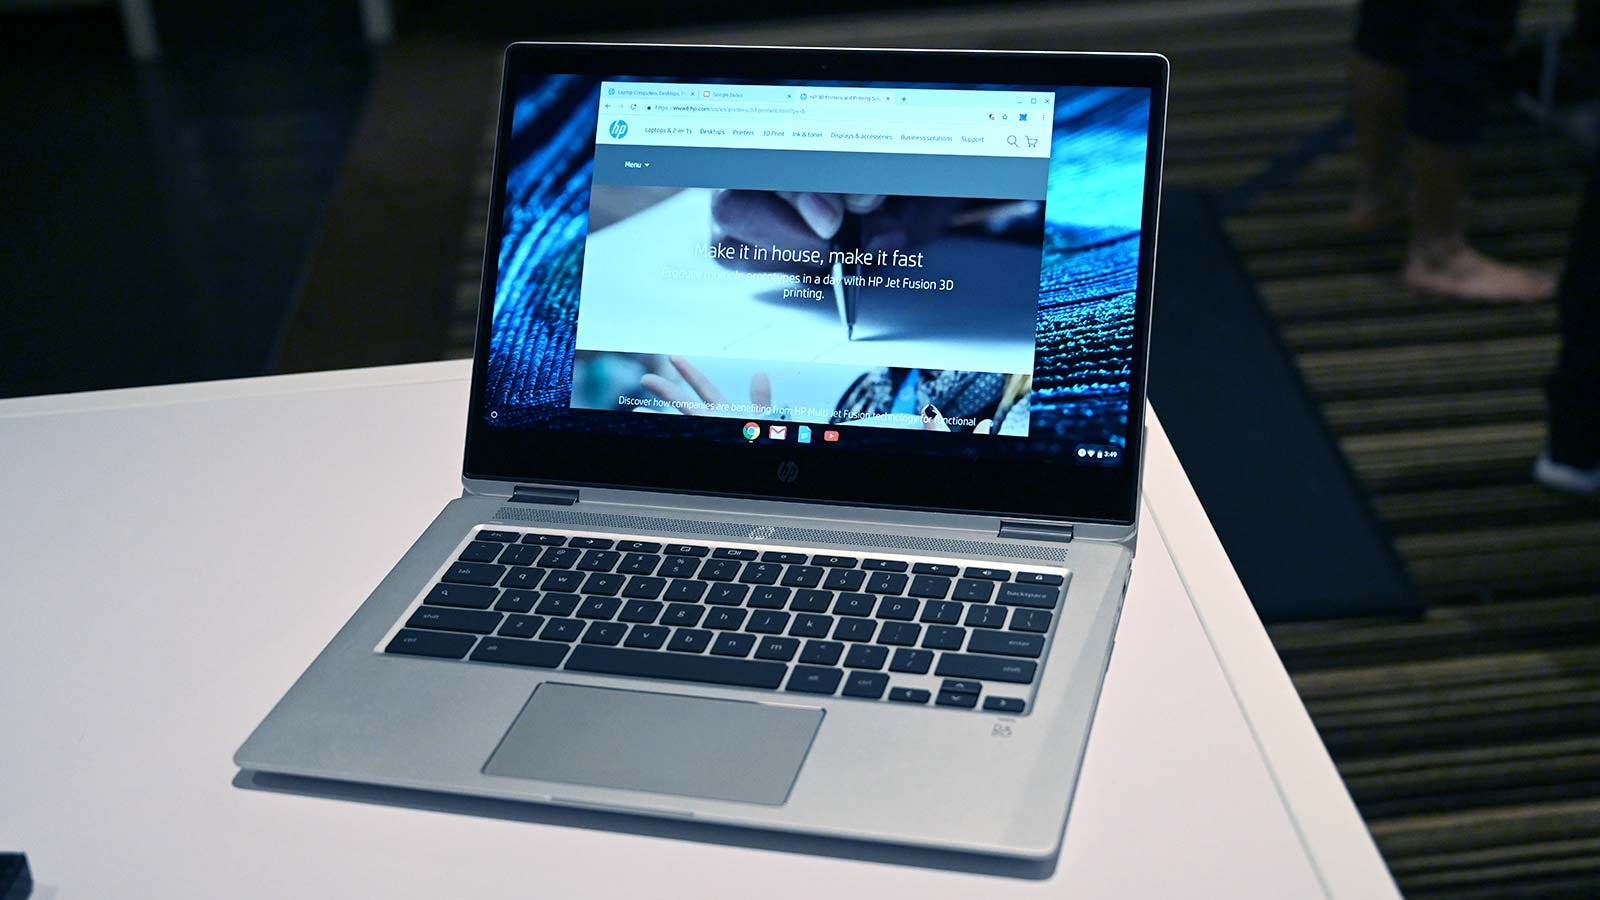 Not a bad looking Chromebook